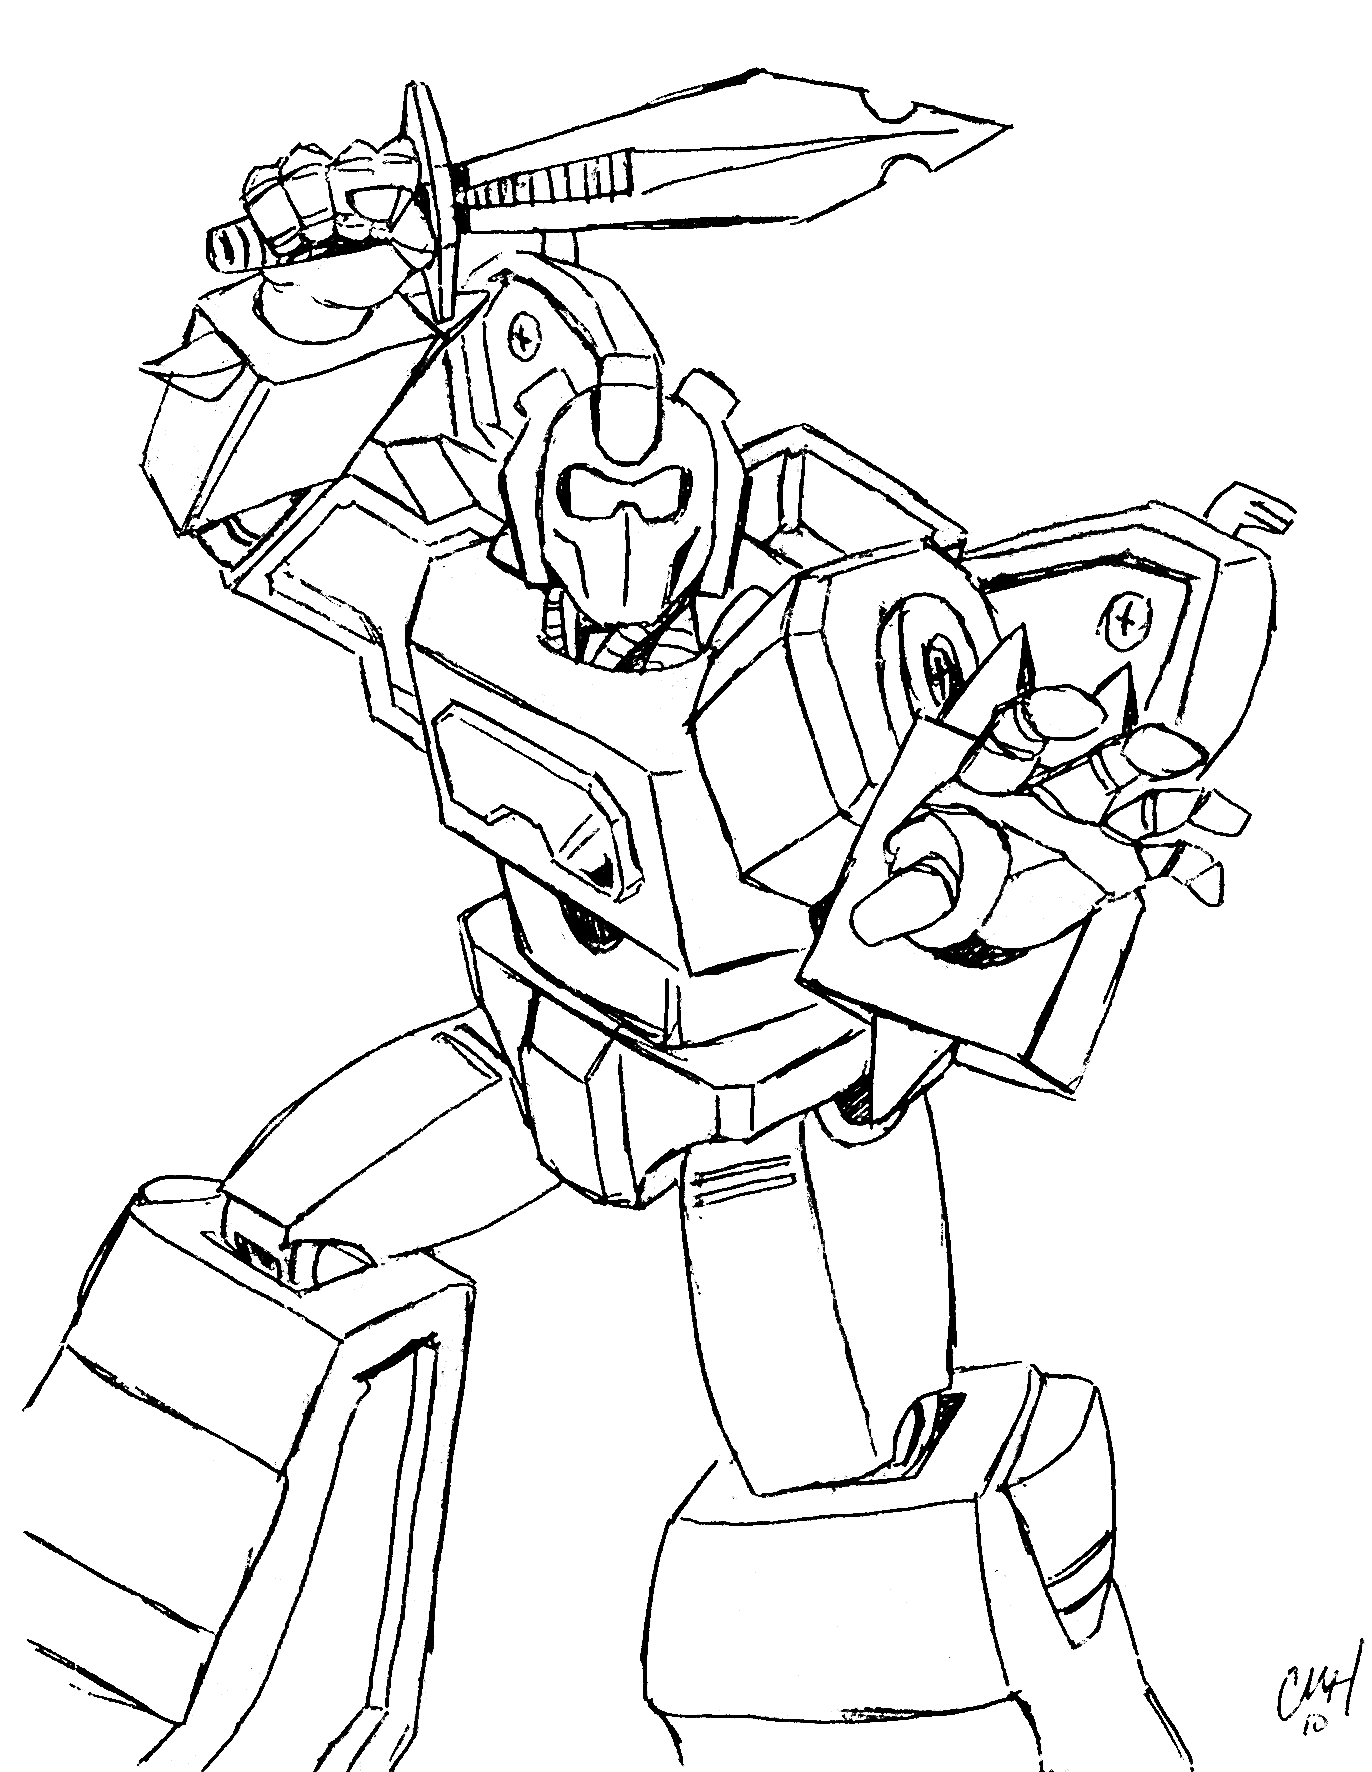 transformer coloring page free printable transformers coloring pages for kids transformer page coloring